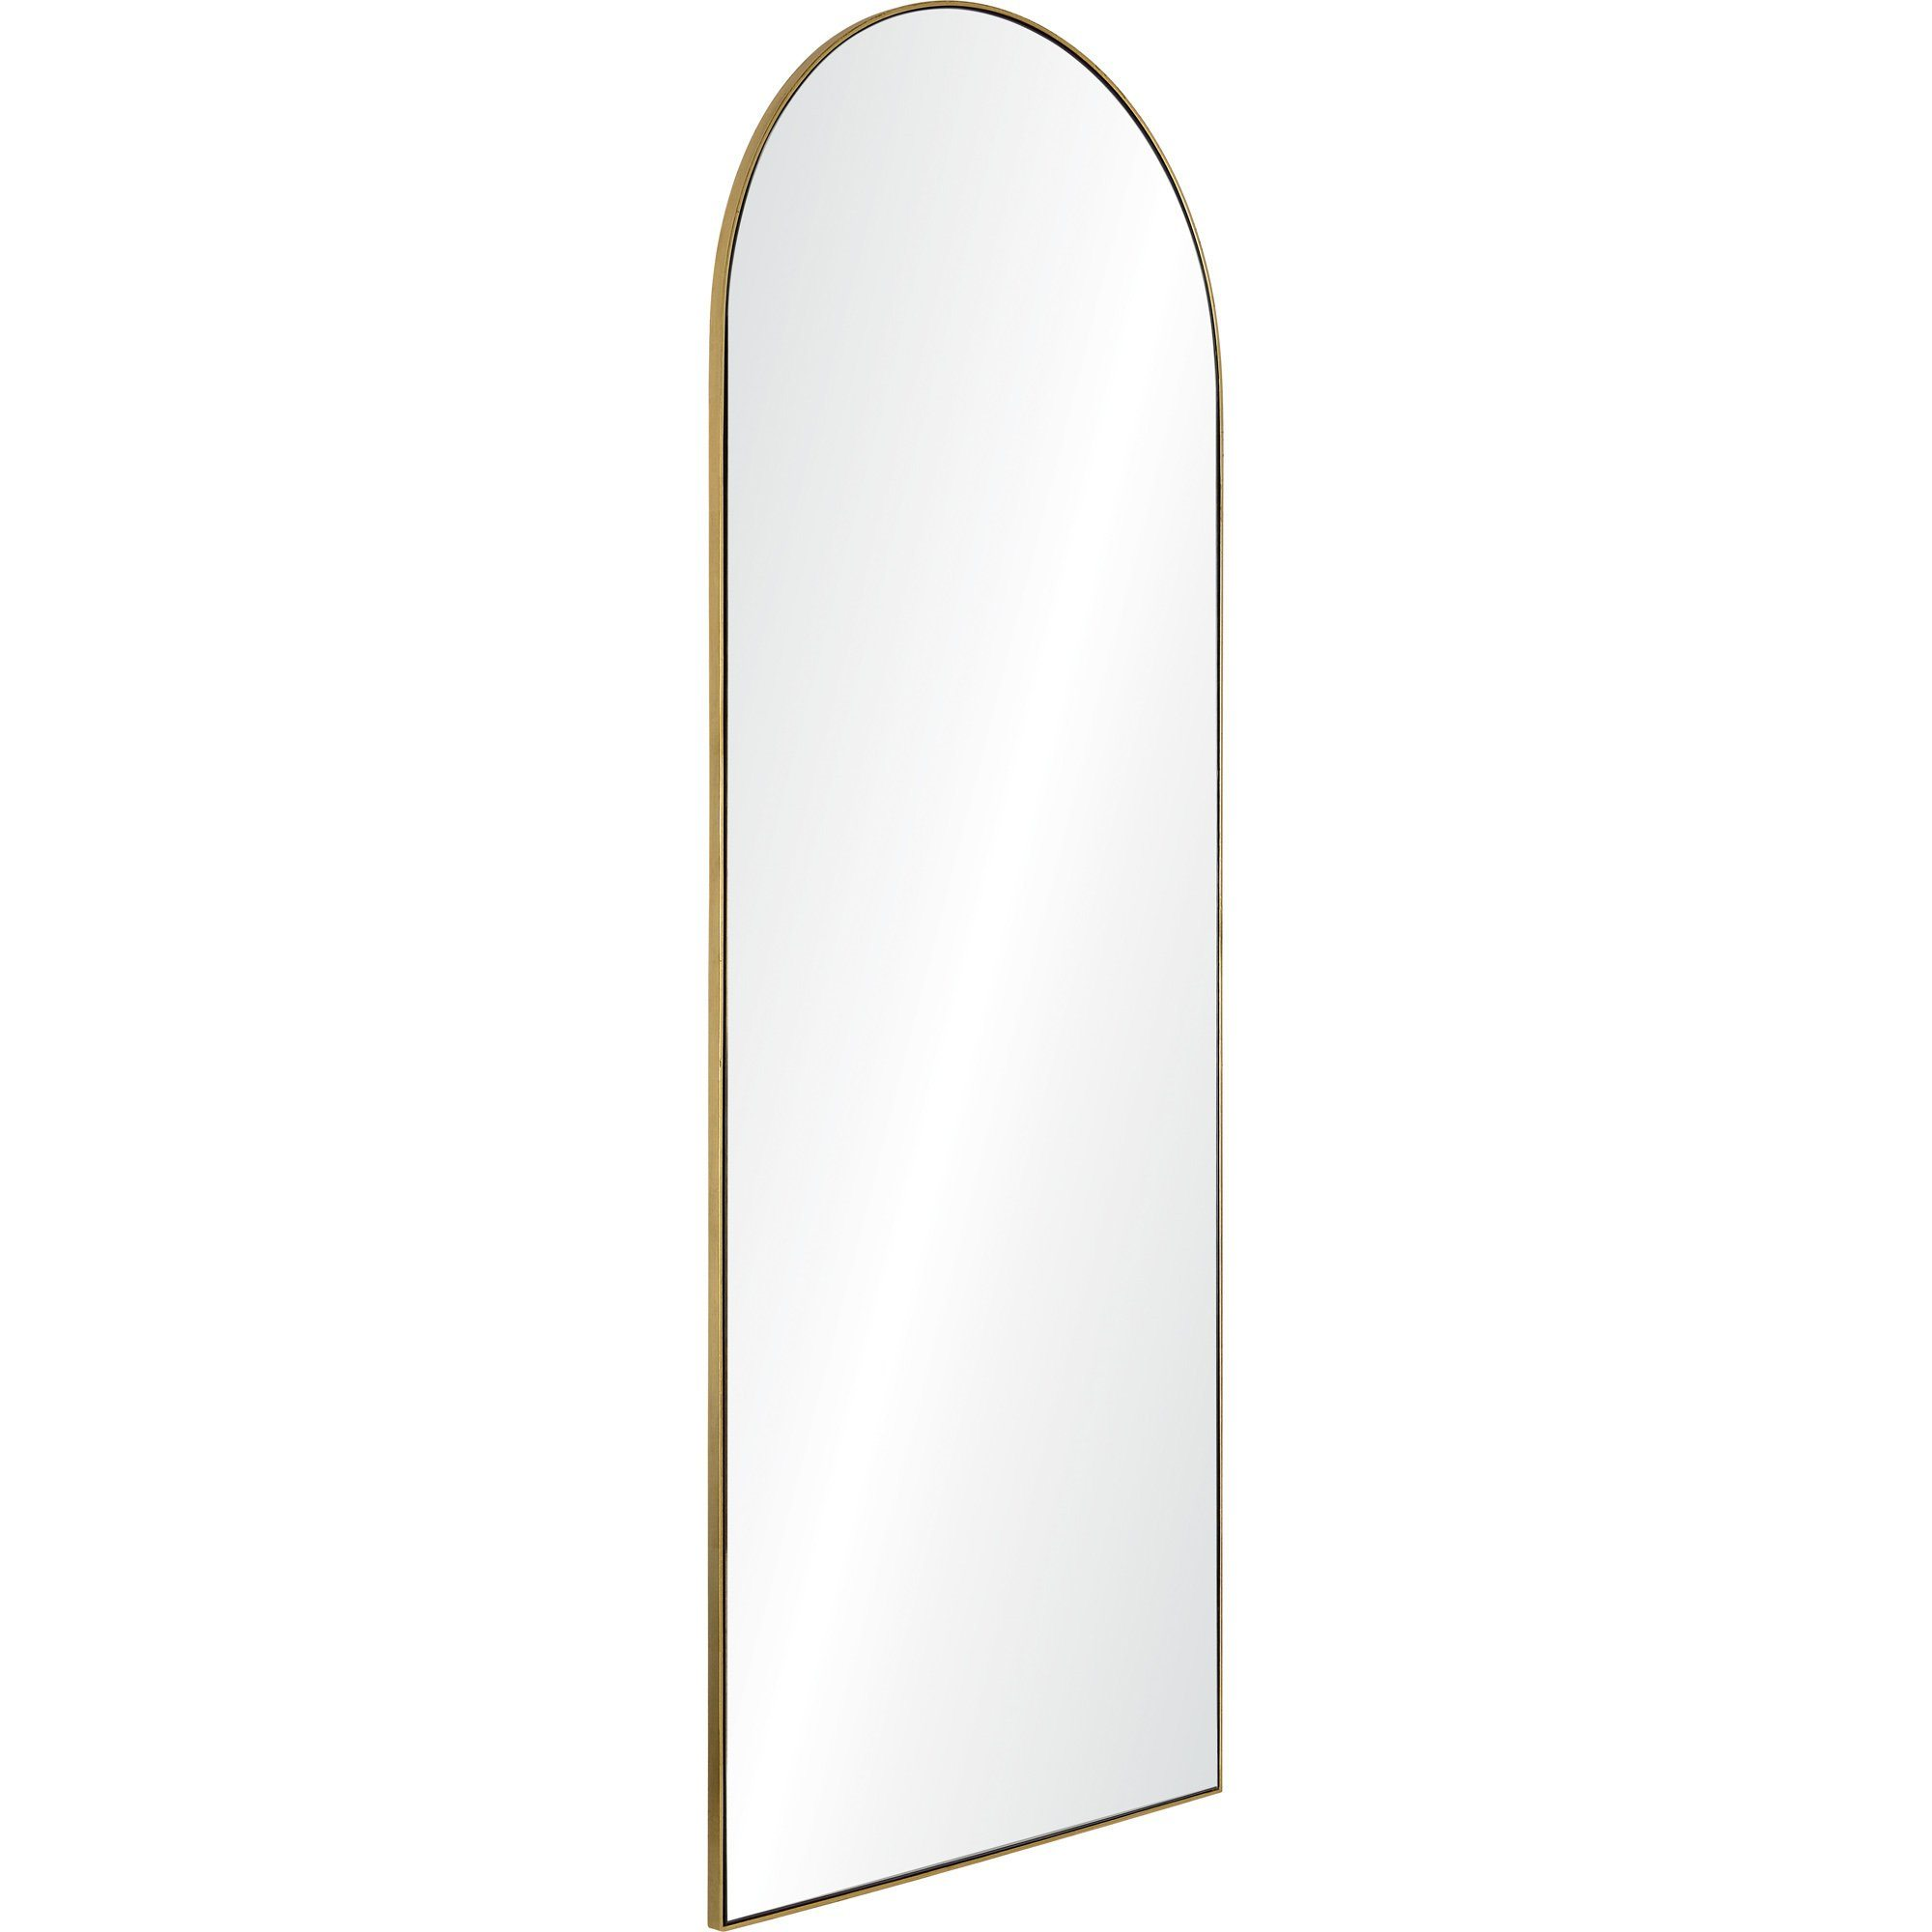 Thatcher Gold Floor Length Mirror With A Thin Gold Metal Frame Winnoby